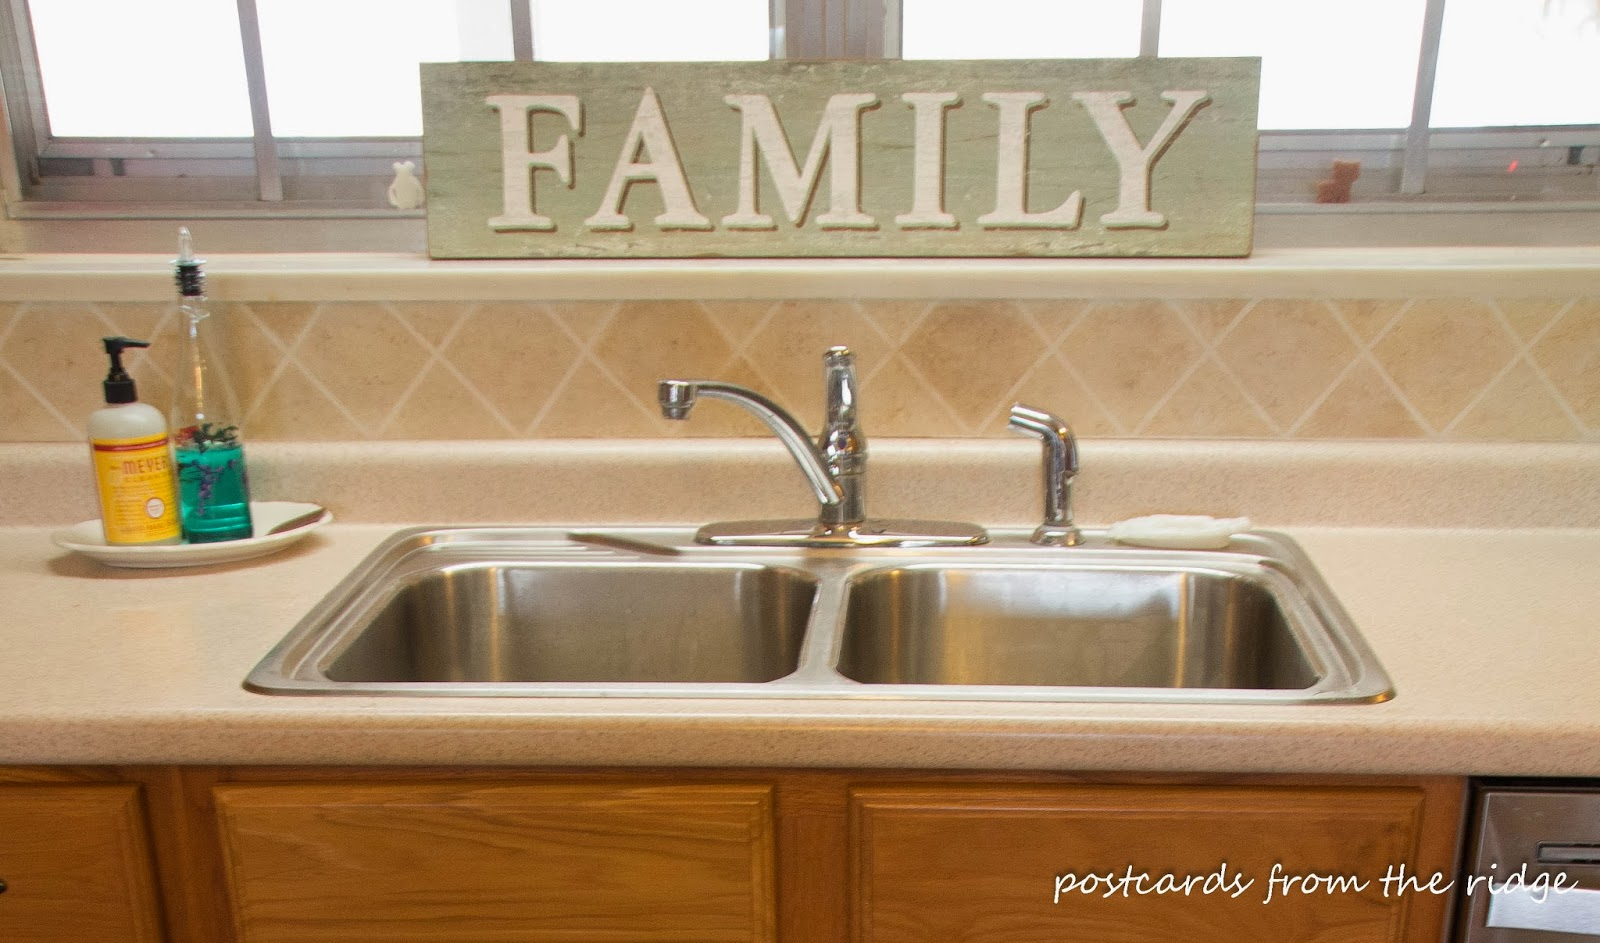 moen brantford kitchen faucet moen brantford kitchen faucet Thanks to National Builder Supply and Moen we were able to upgrade to a gorgeous new faucet that was exactly what we had been wanting